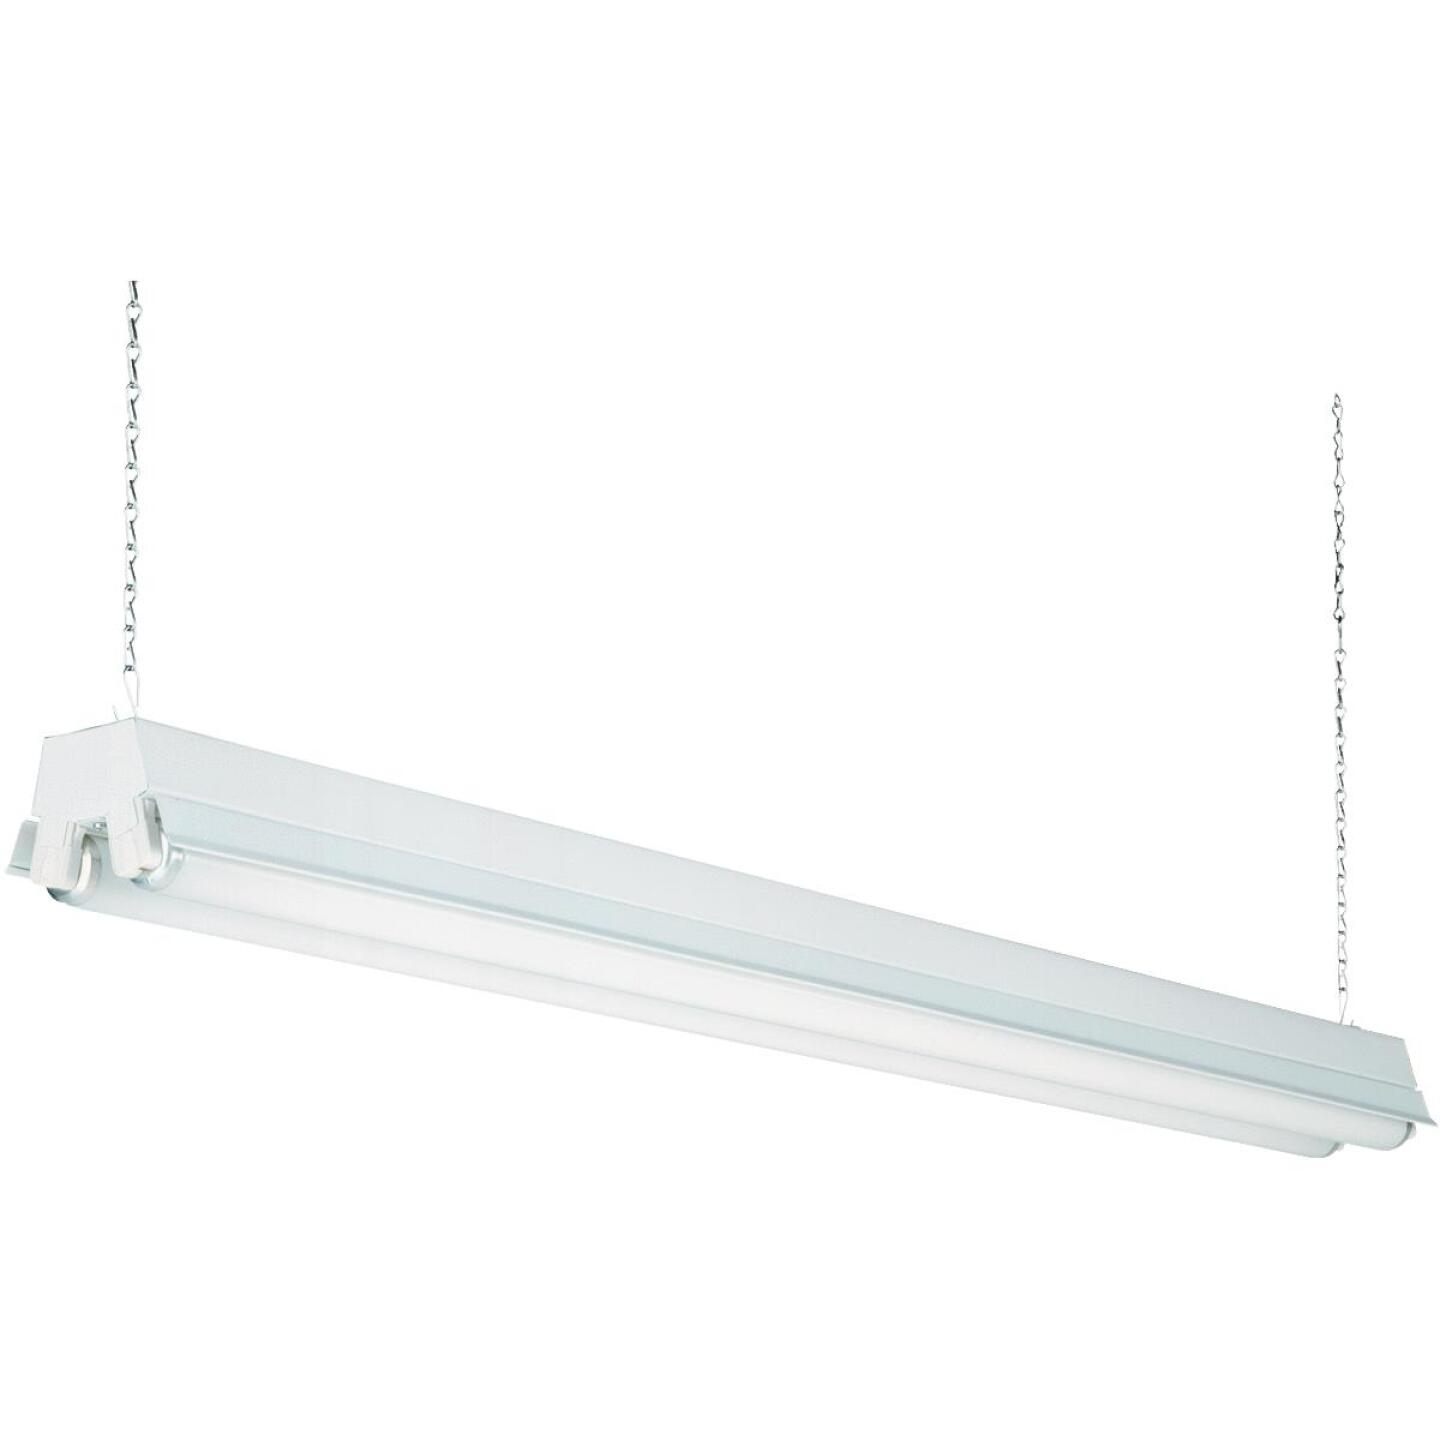 Lithonia 4 Ft 2 Bulb T12 Fluorescent Shop Light Fixture Do It